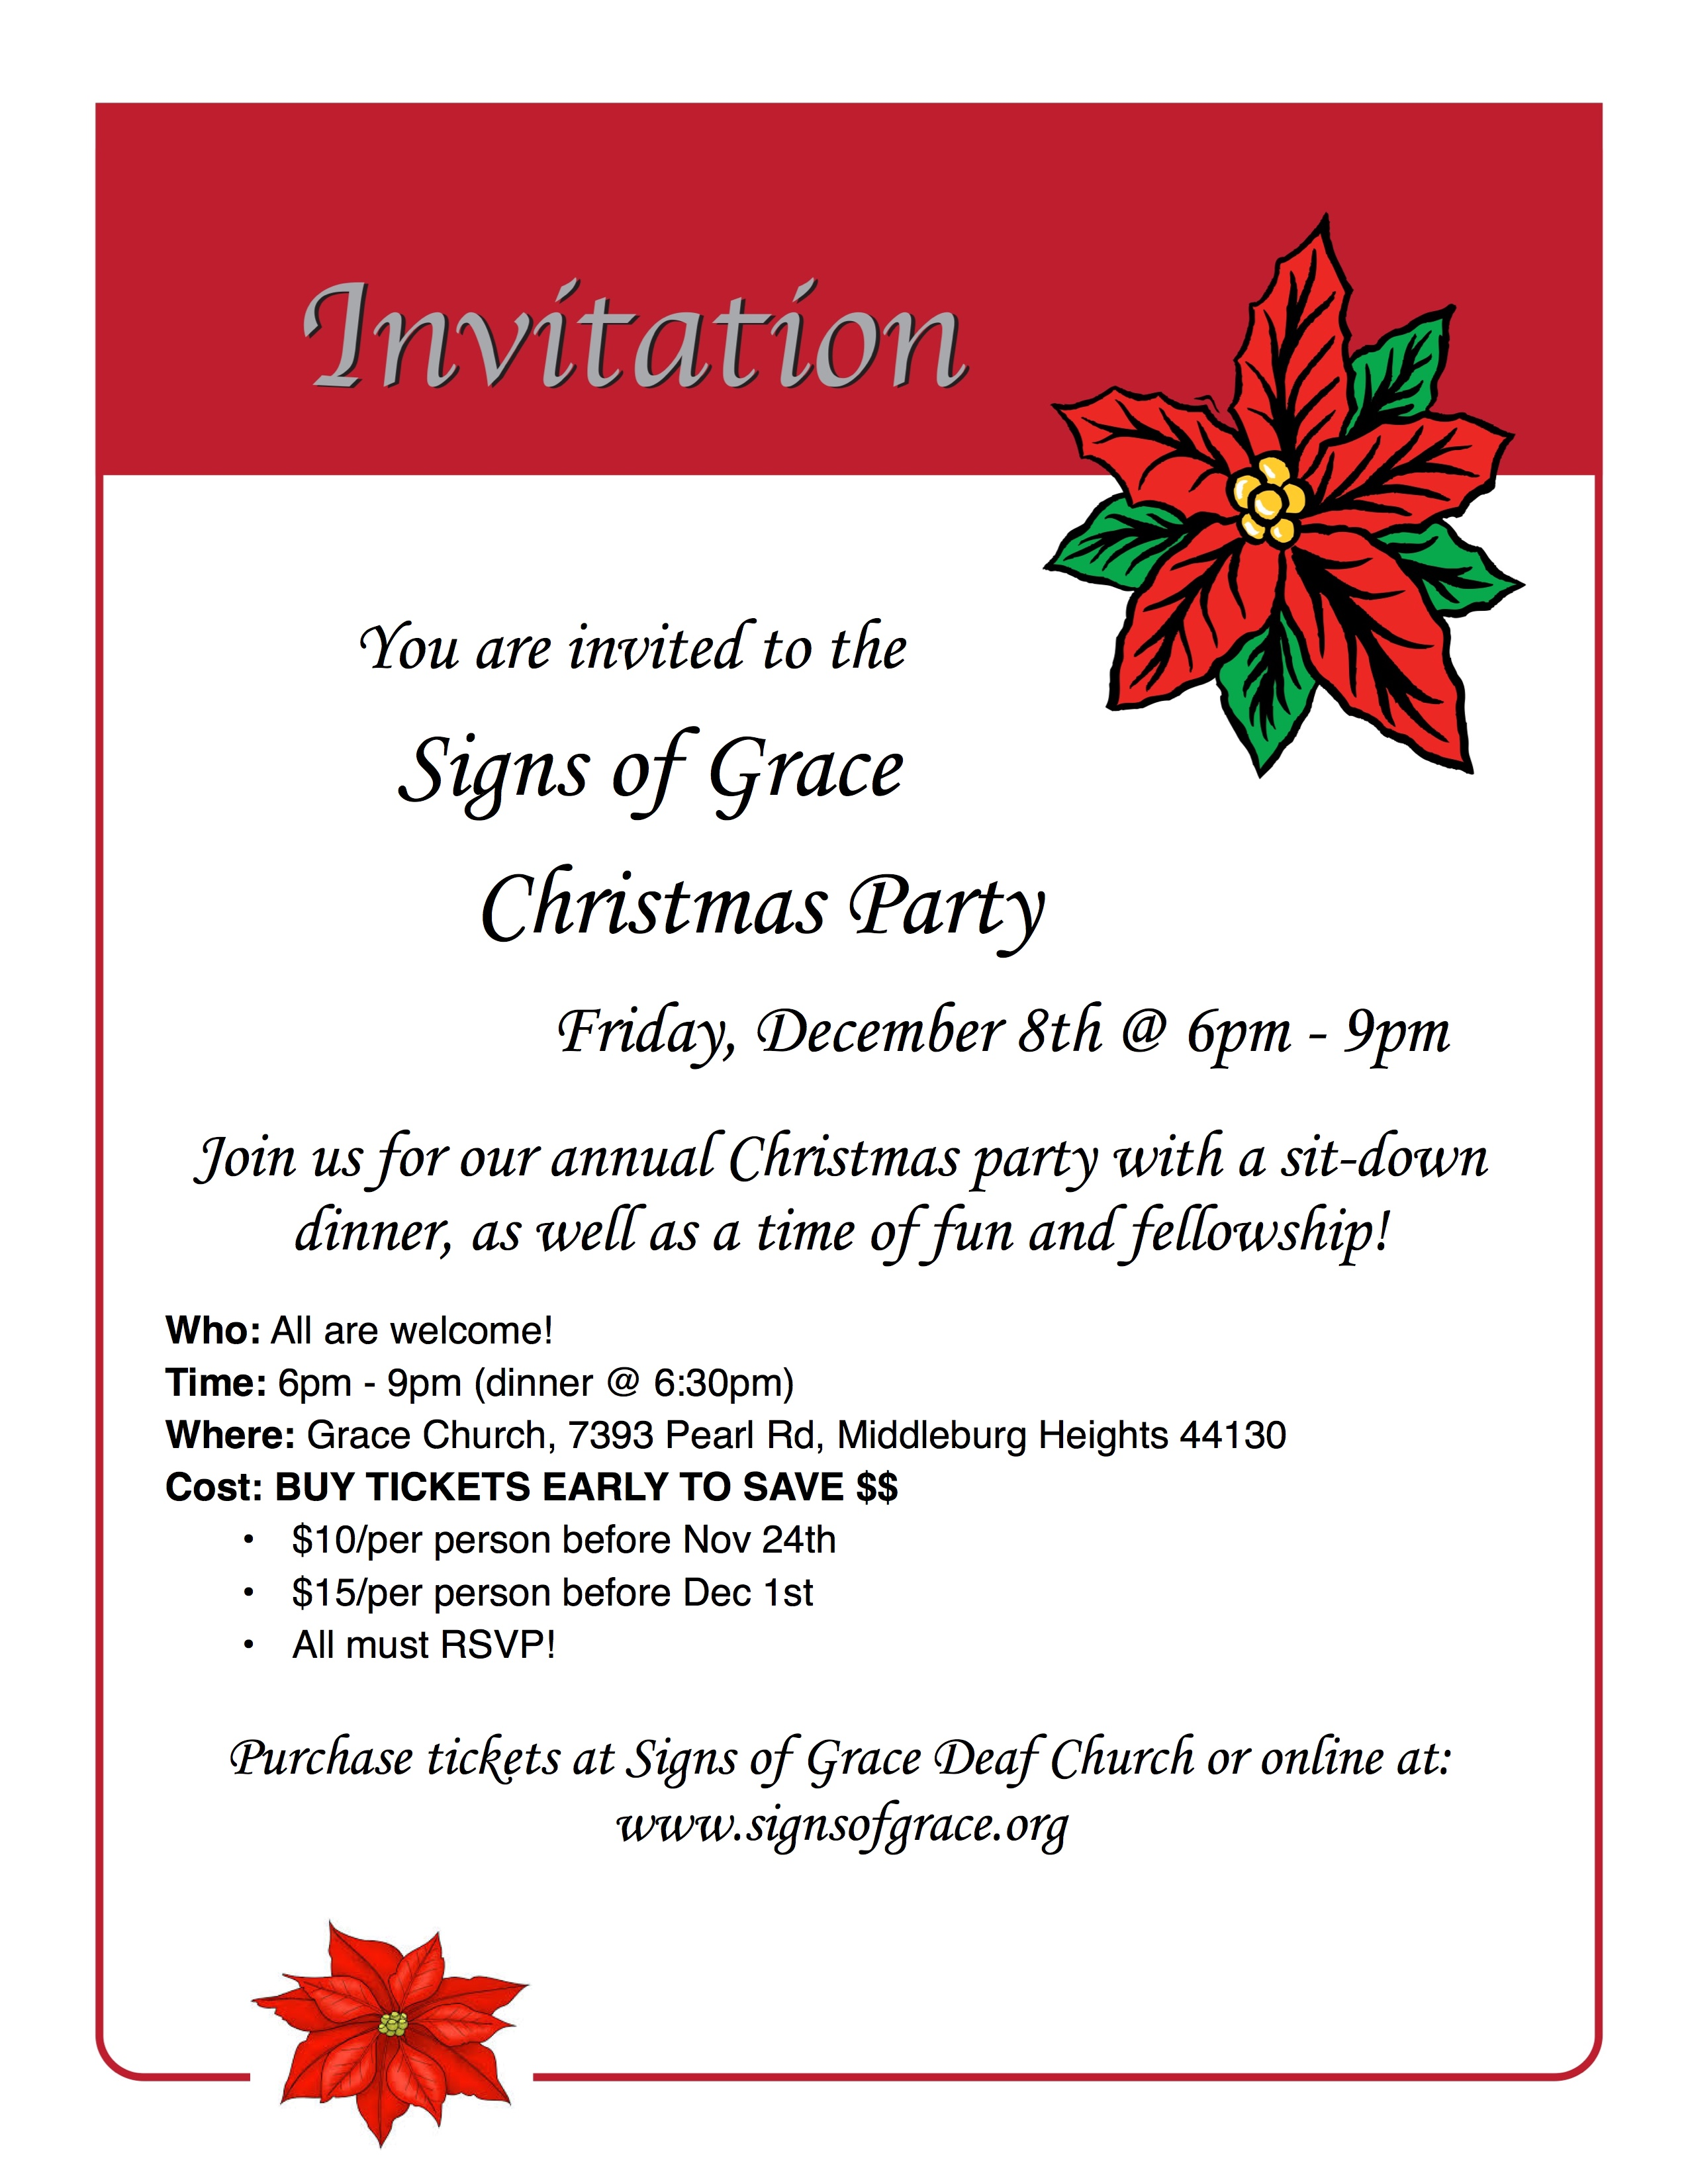 Signs of grace christmas